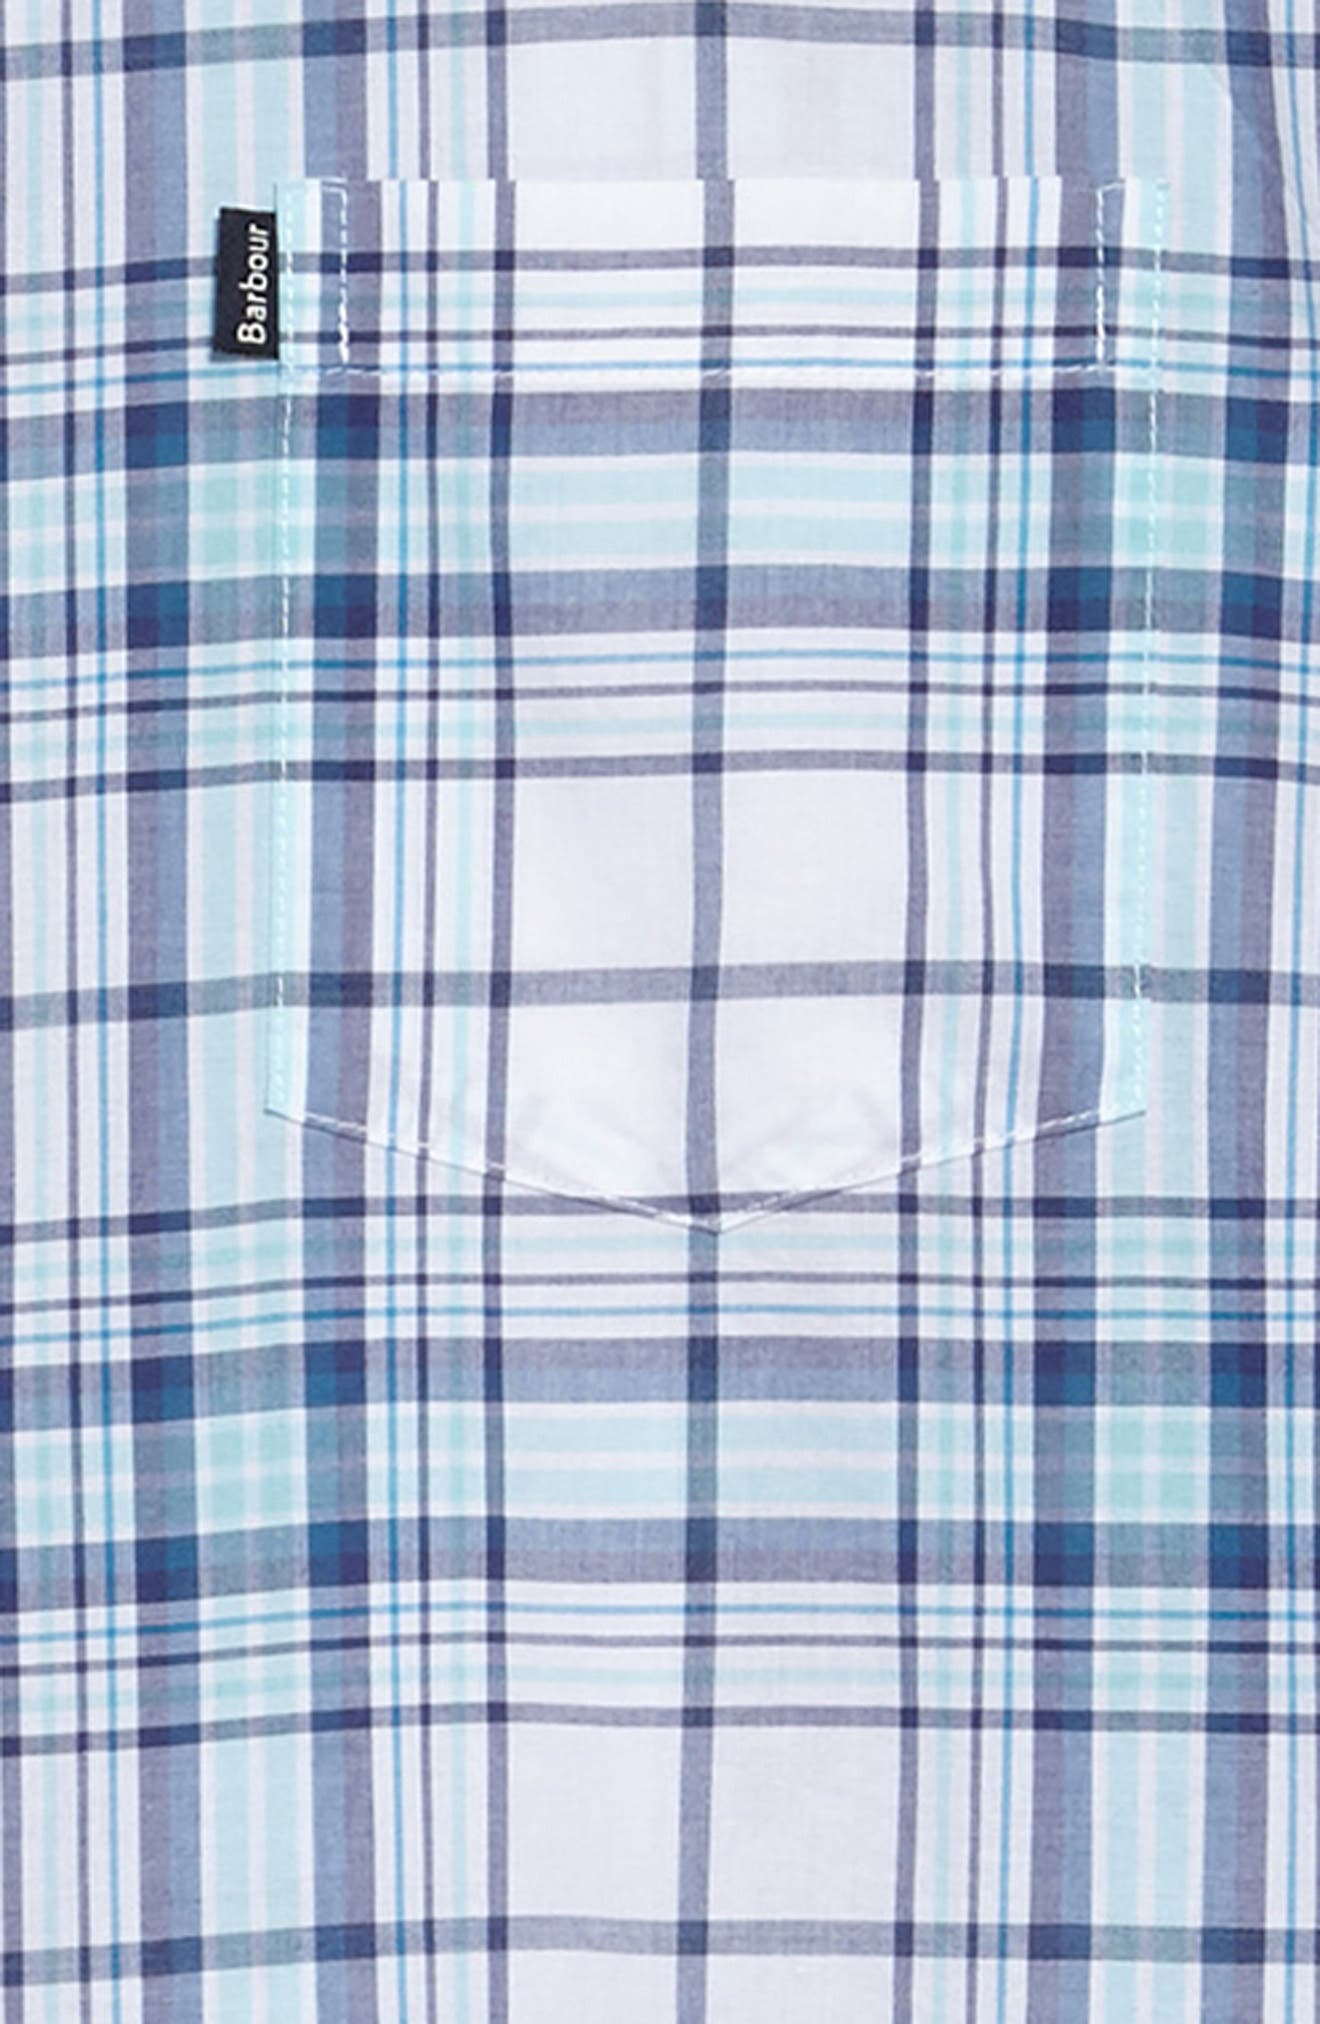 Christopher Tailored Fit Plaid Sport Shirt,                             Alternate thumbnail 6, color,                             440